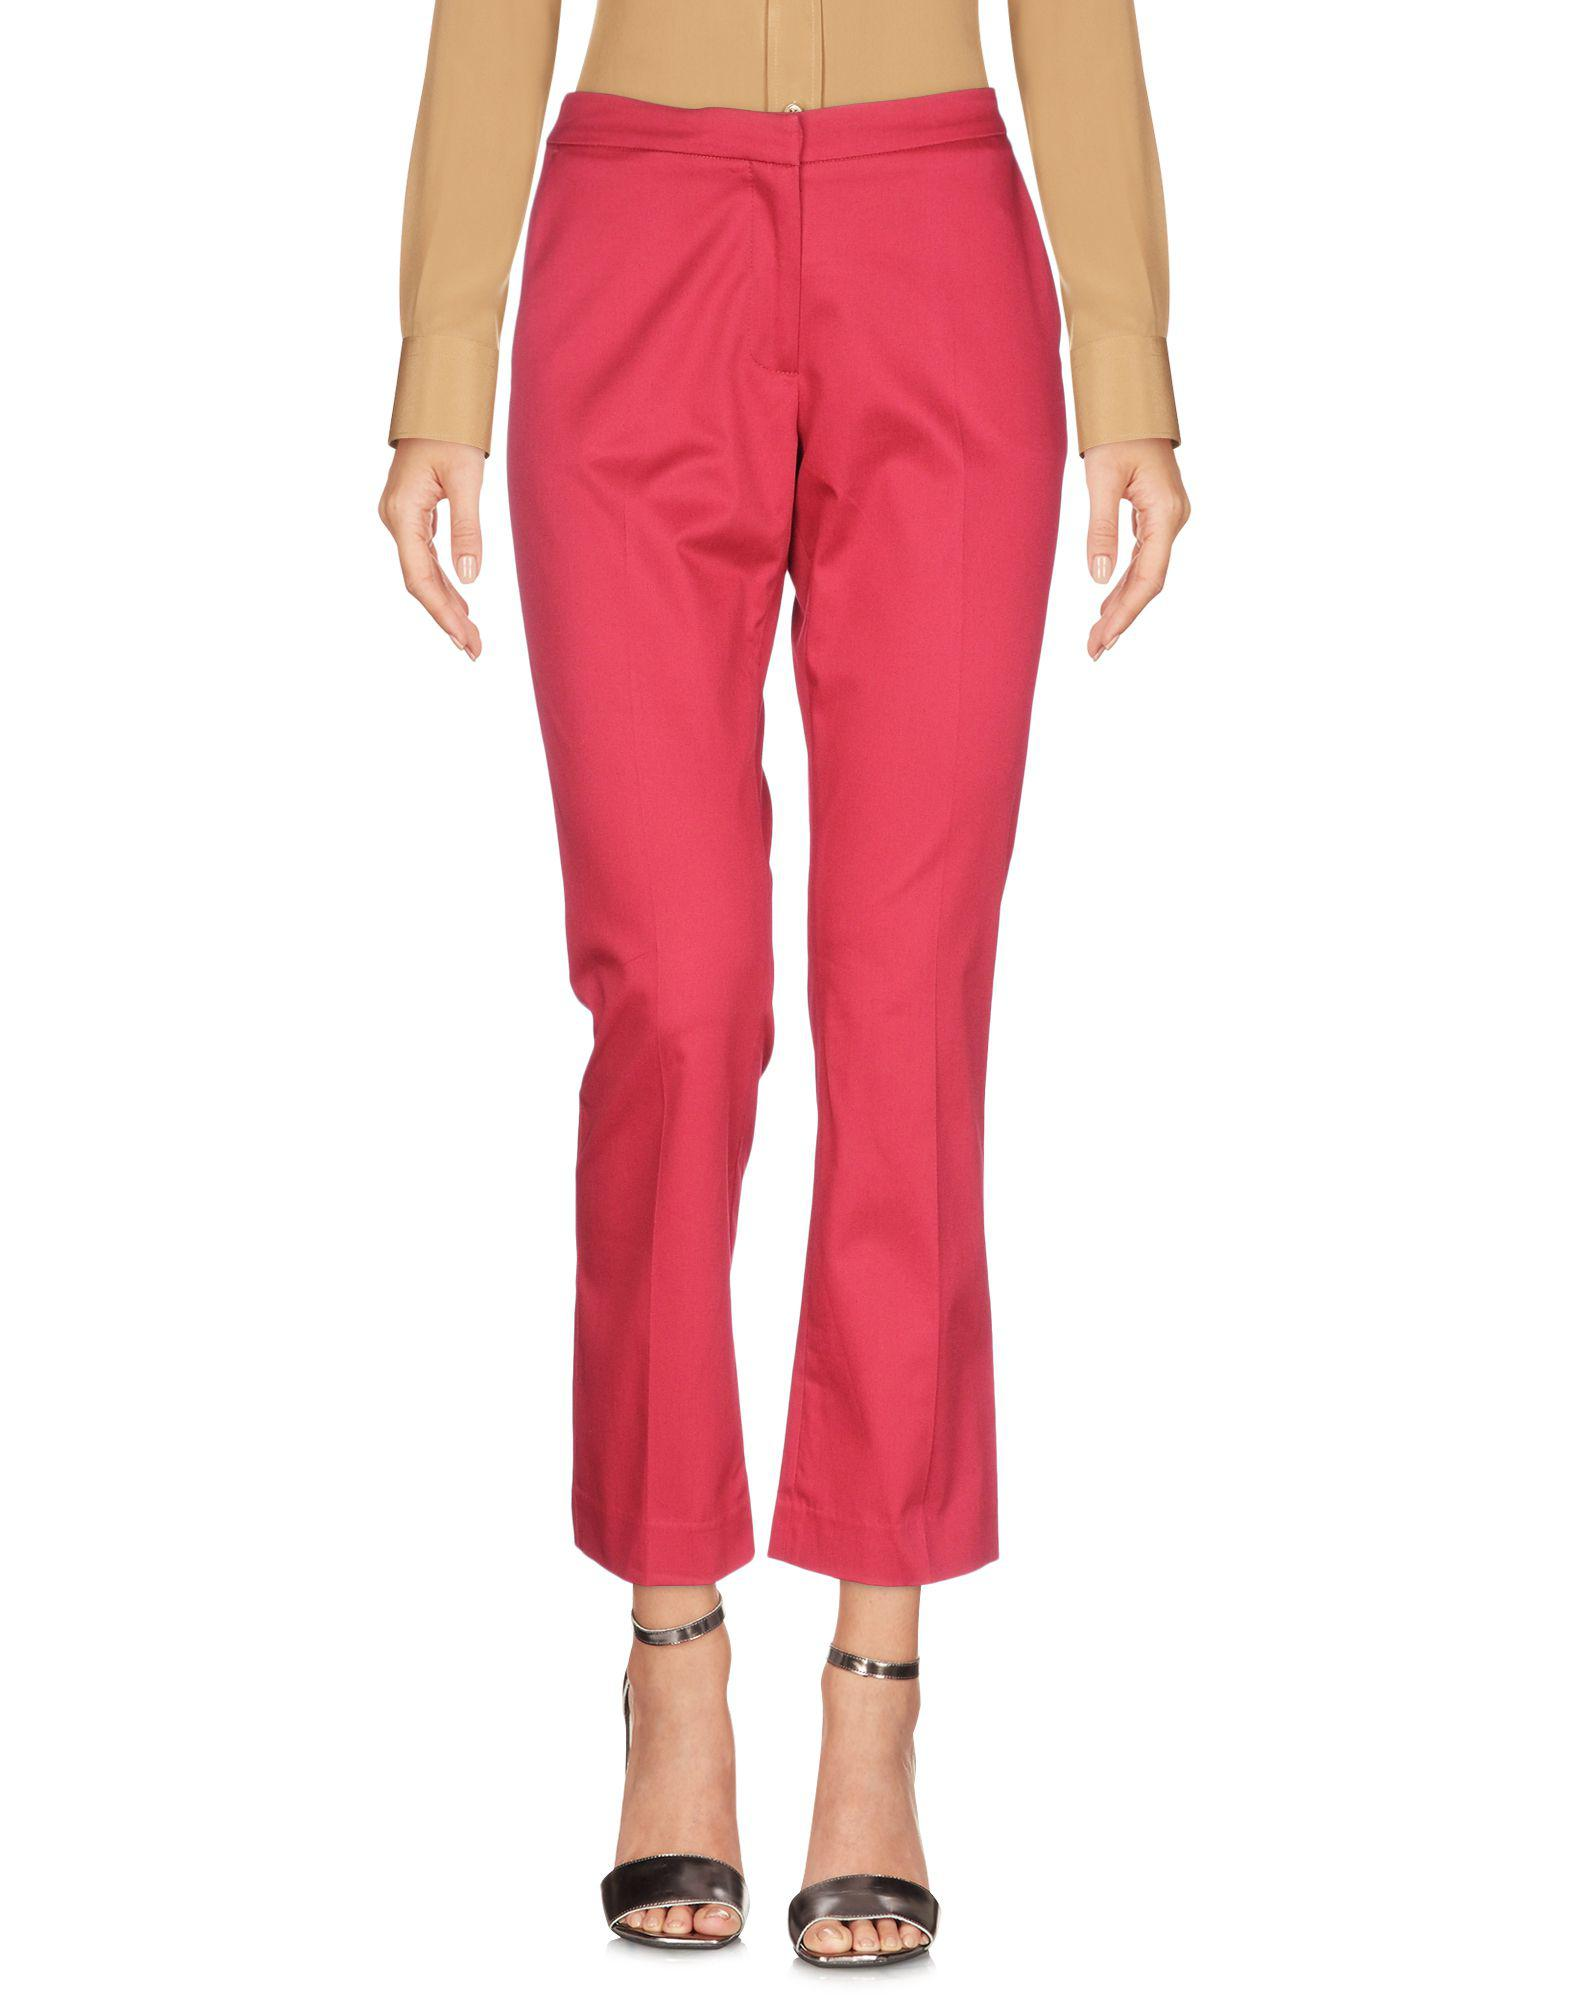 TROUSERS - 3/4-length trousers Ki6? Who are you? Zl98V